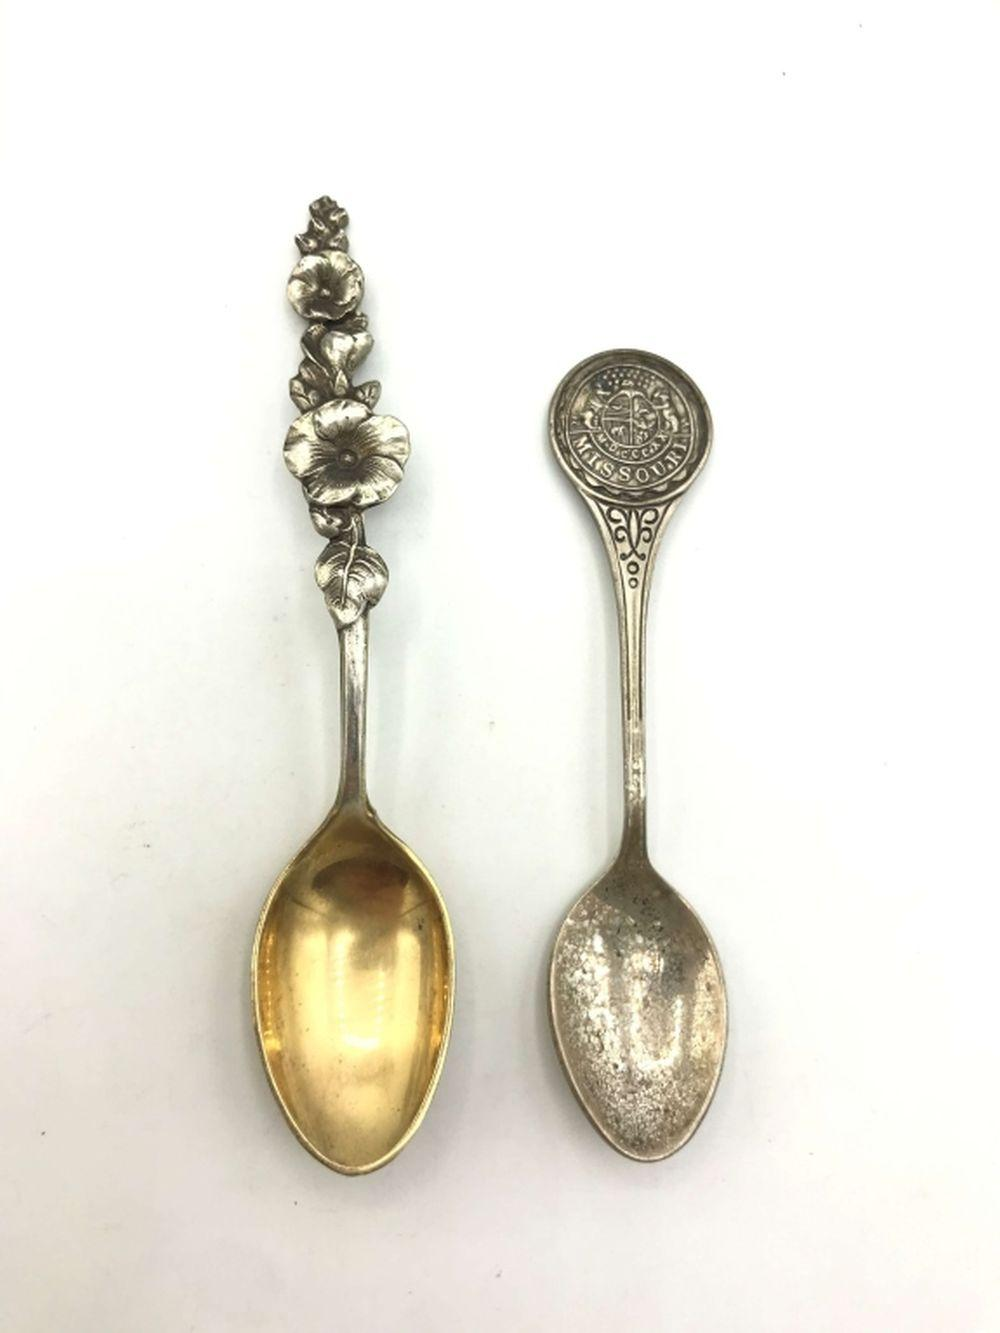 2 STERLING SPOONS (BRUCE & REED & BARTON)